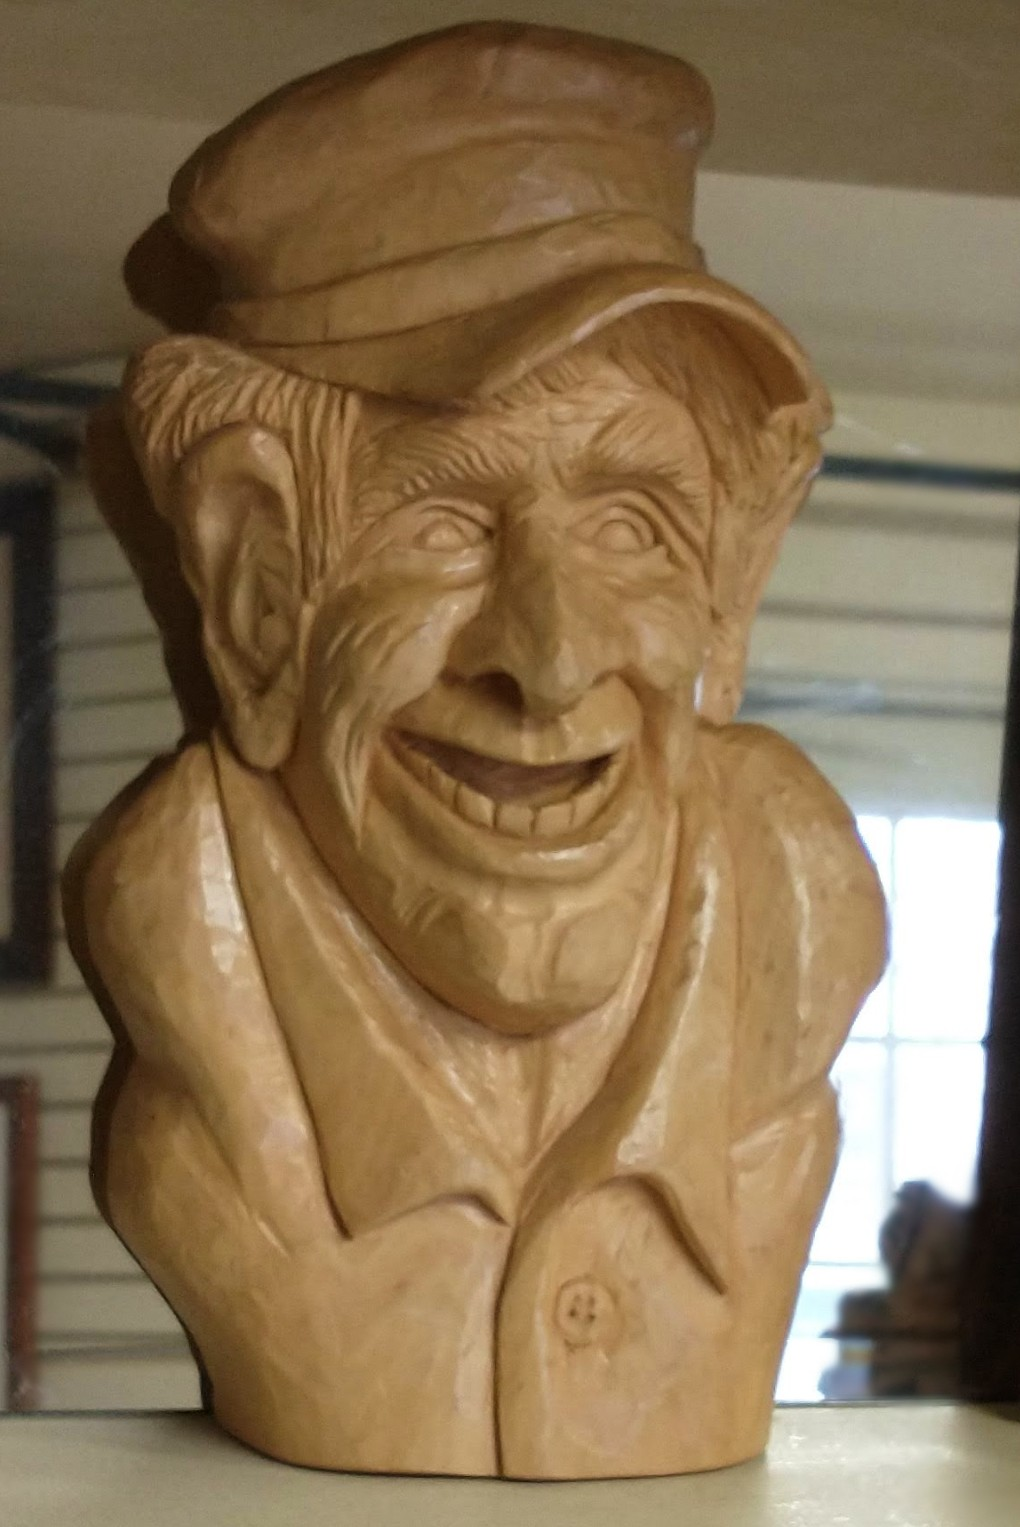 Hand-Carved Wooden Bust of Man